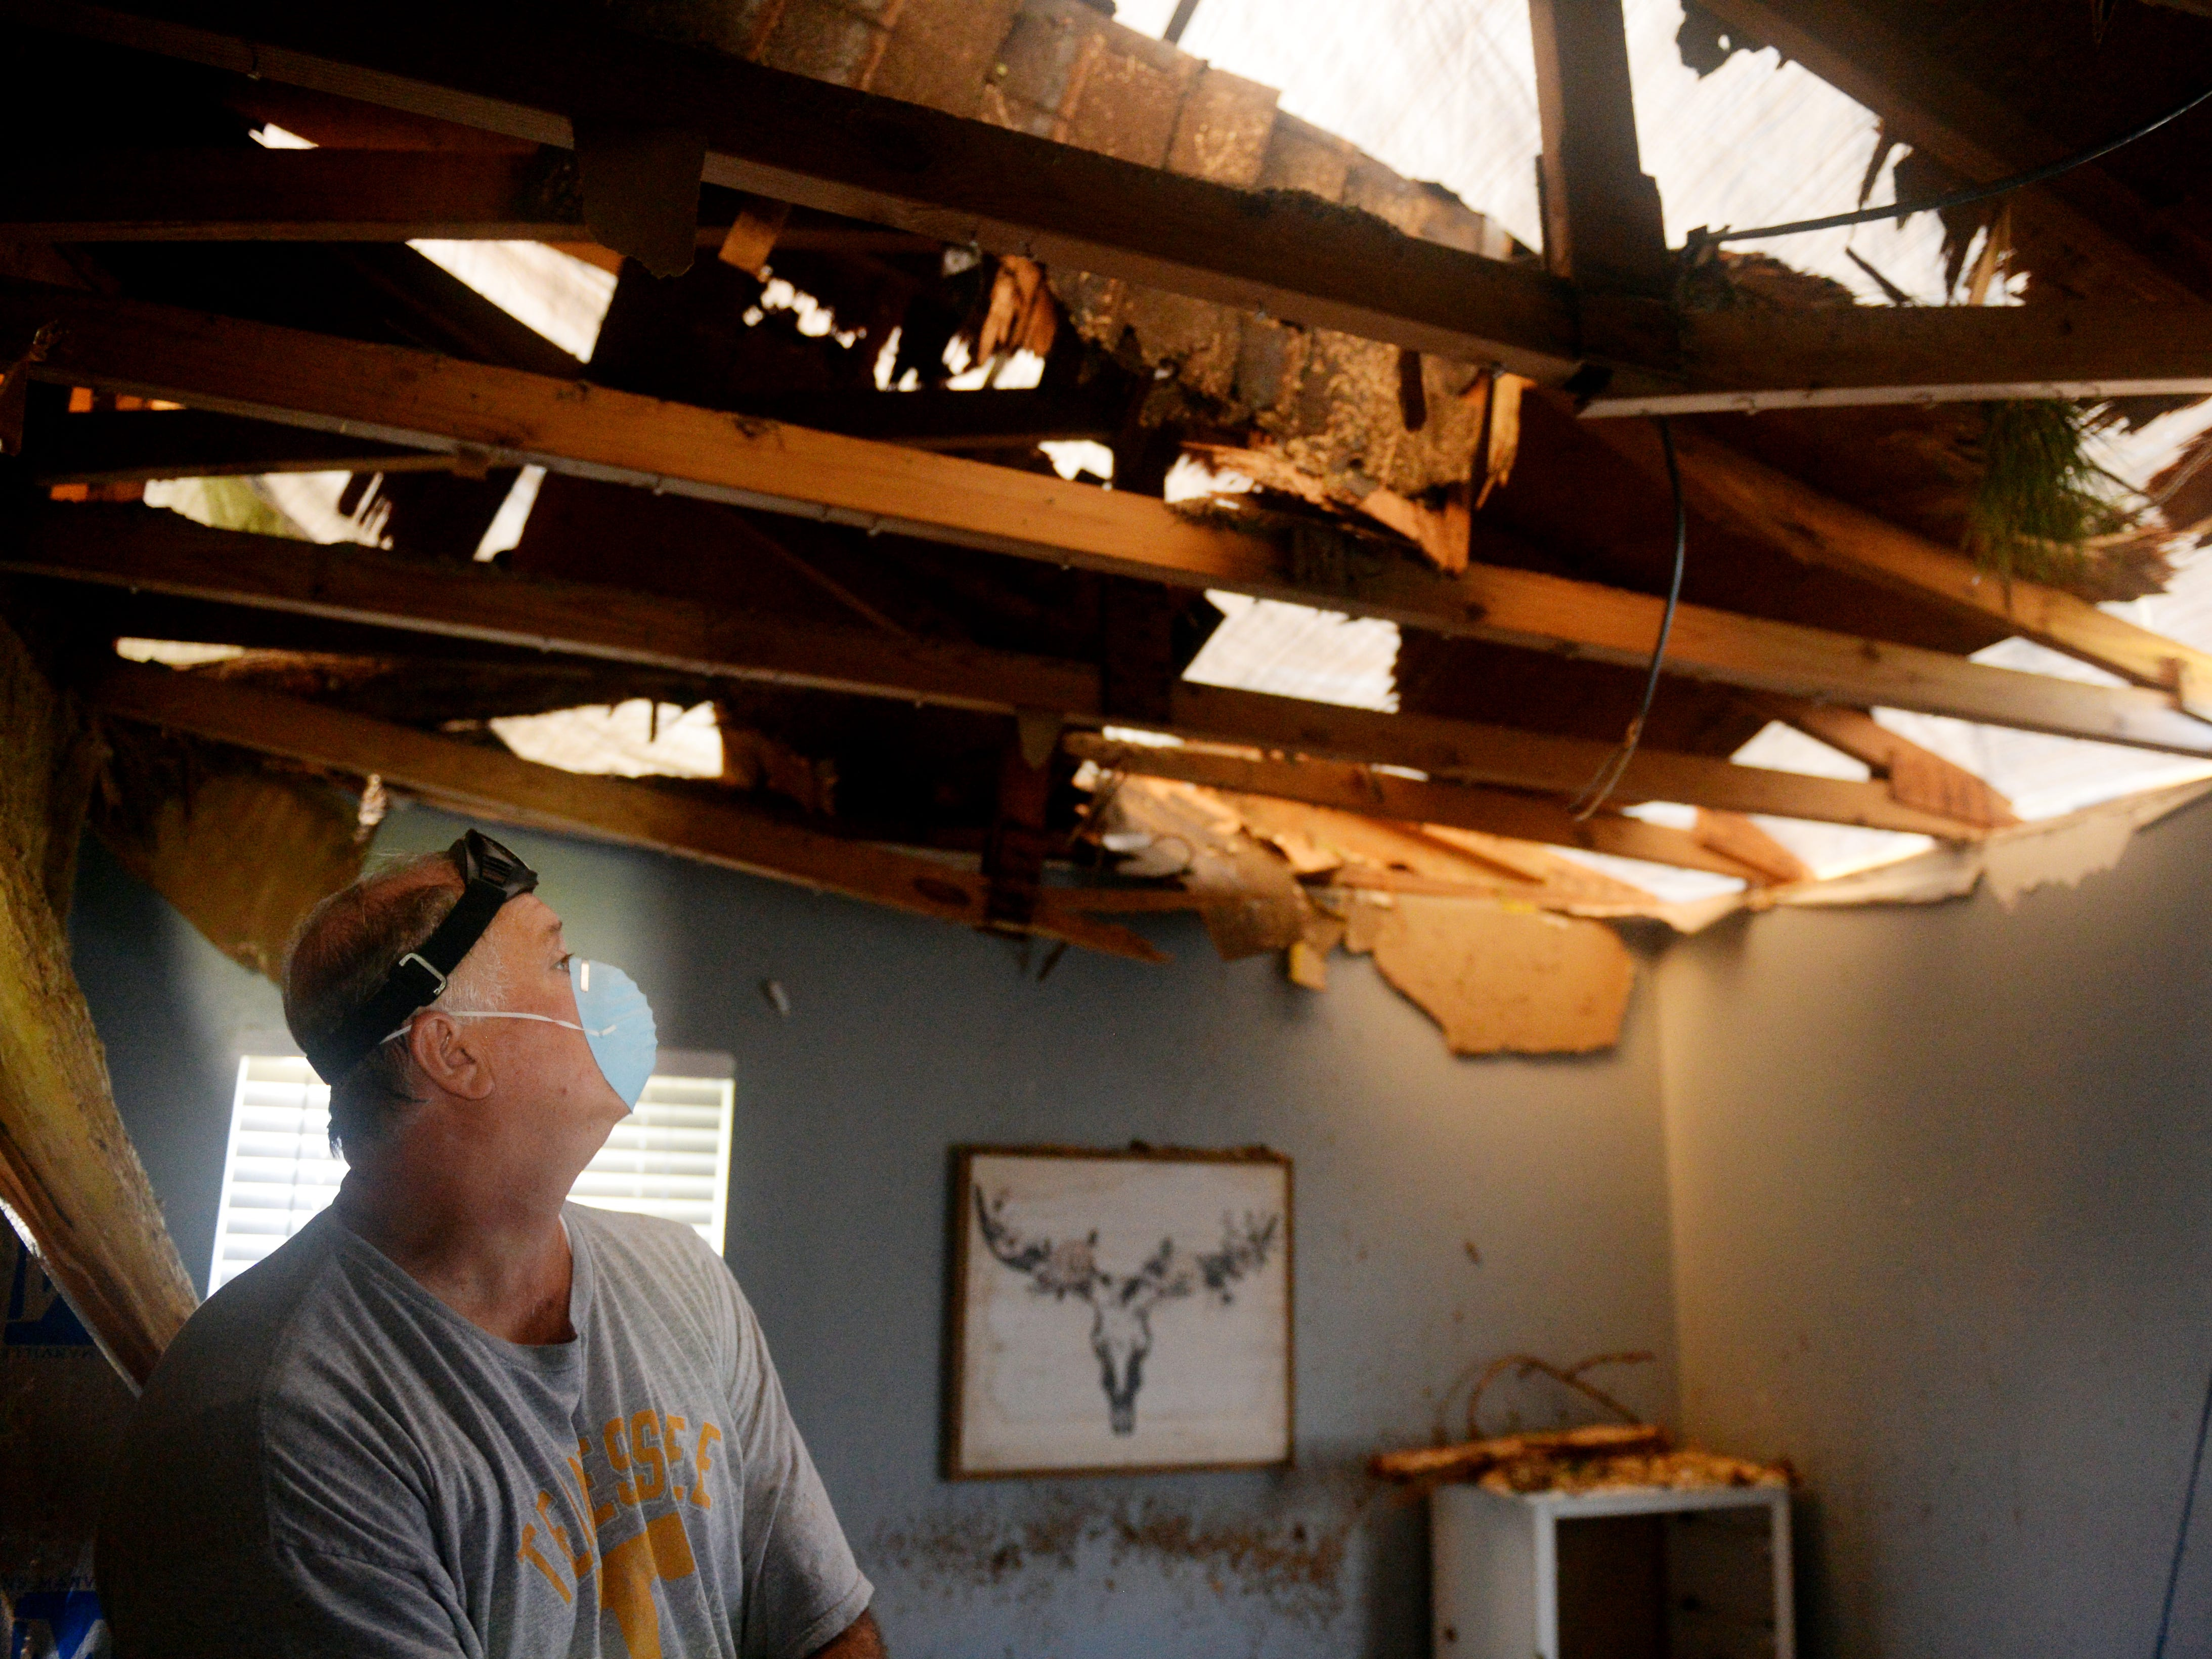 Oct. 14, 2018, Panama City, FL, USA; Allen Wykle surveys the damage done to his cousin's home after a tree fell on the roof and came through the ceiling from Hurricane Michael. Wykle's cousin, Micaela Johnson and her husband  Josh, were out of town during the storm. The home is property owned by Fellowship Baptist Church where Josh Johnson is an associate paster.